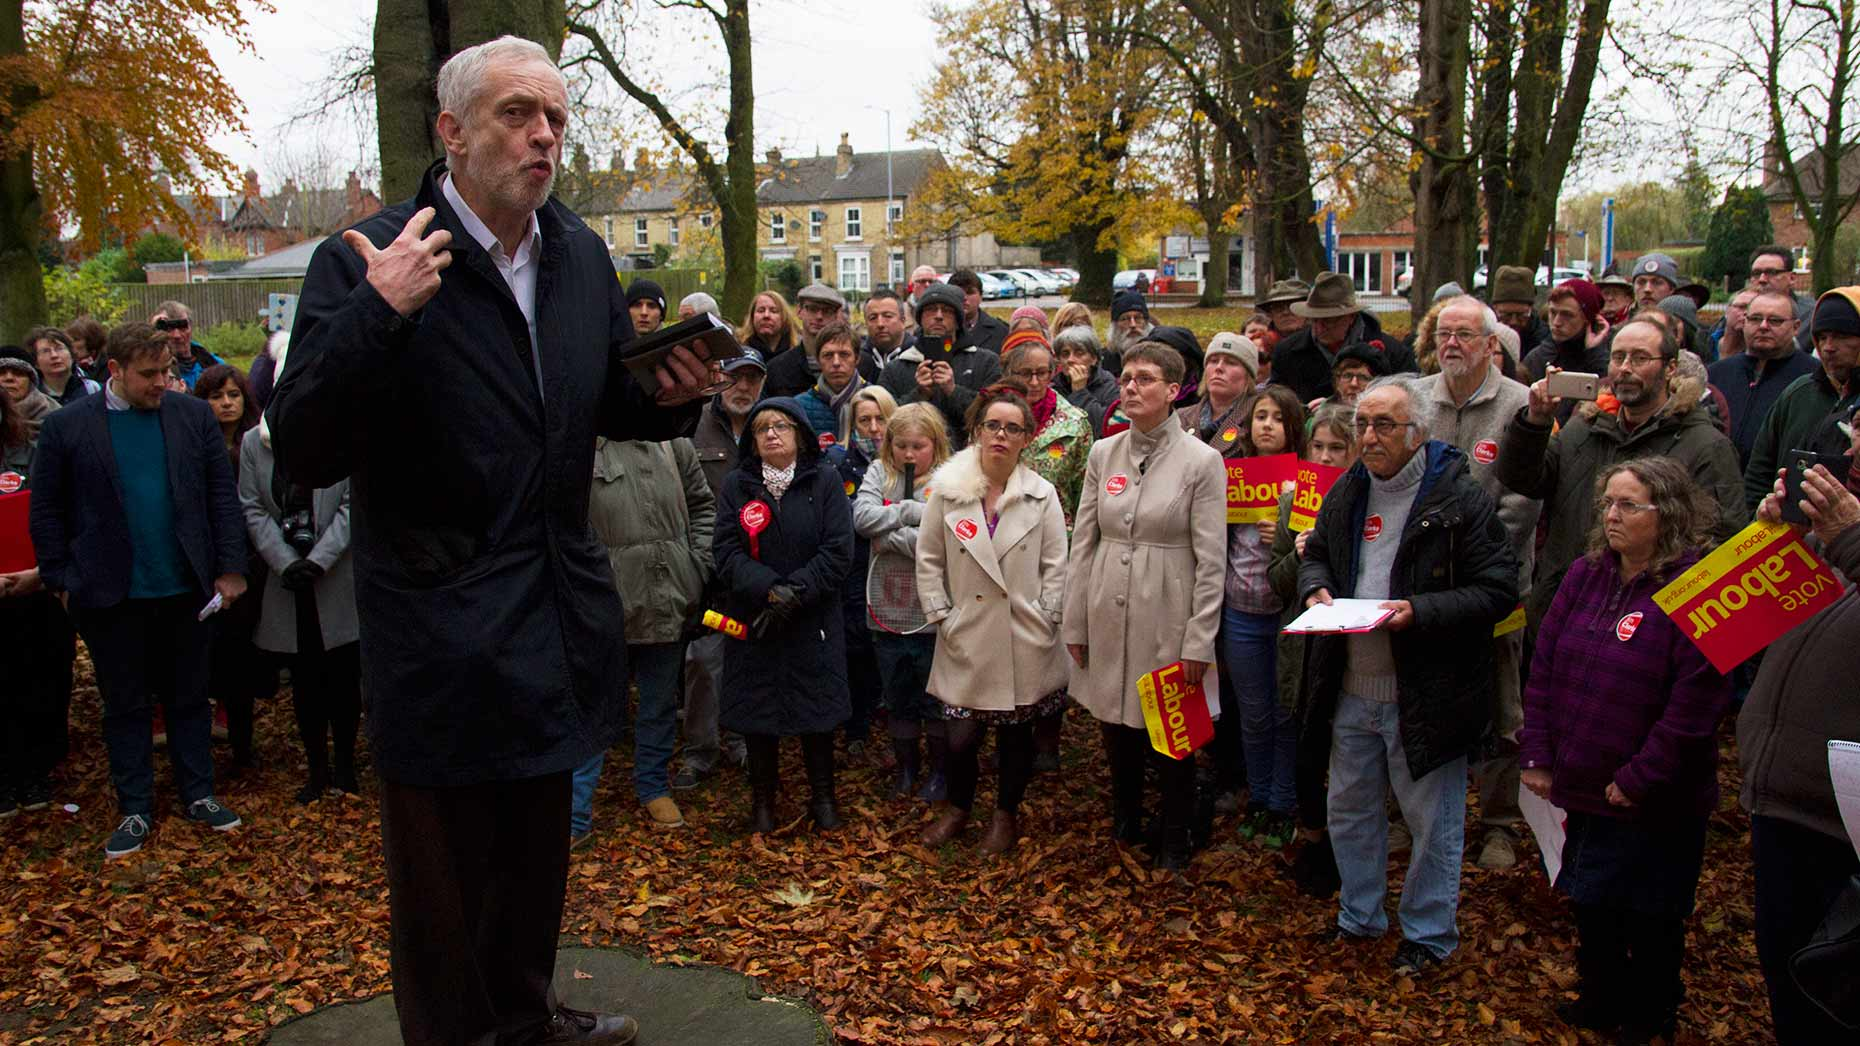 Corbyn addressing his supporters. Photo: Jack Creasey for Lincolnshire Reporter